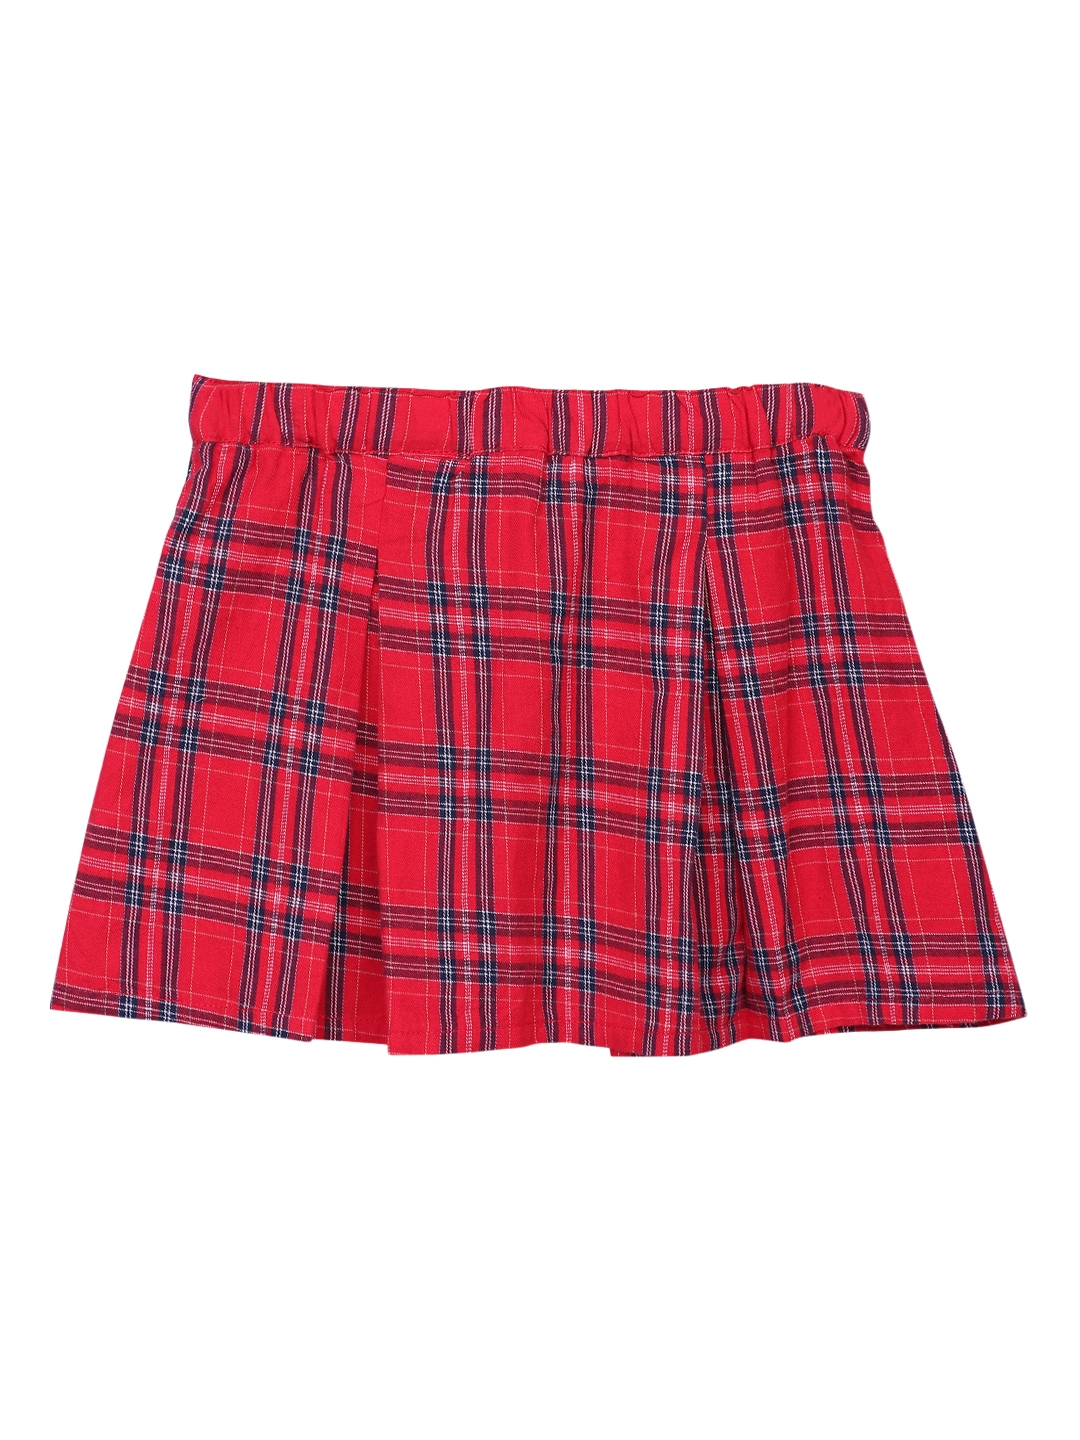 88db679828 Buy Beebay Girls Red & Blue Checked Skirt - Skirts for Girls 7028816 ...